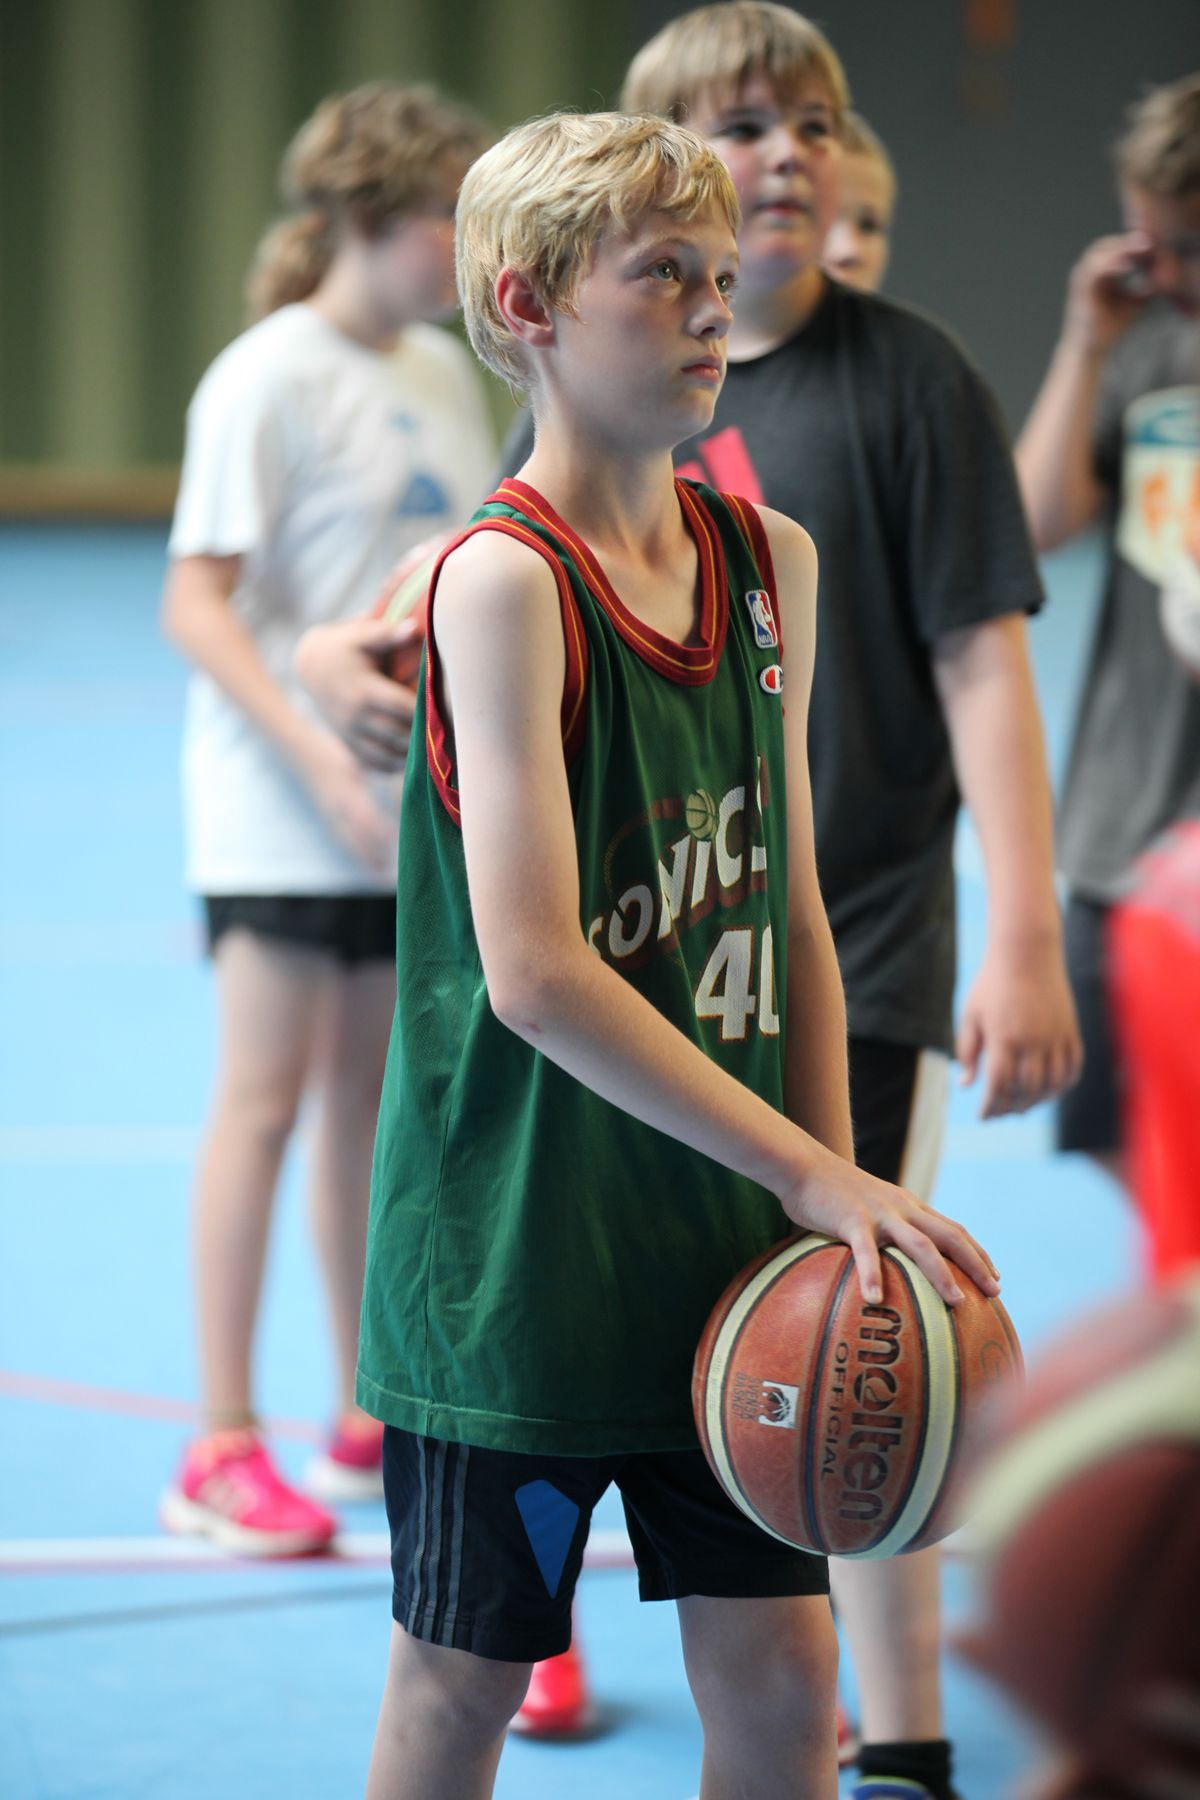 Sommer_BBall-Camp_2014_Tag 3 (22)